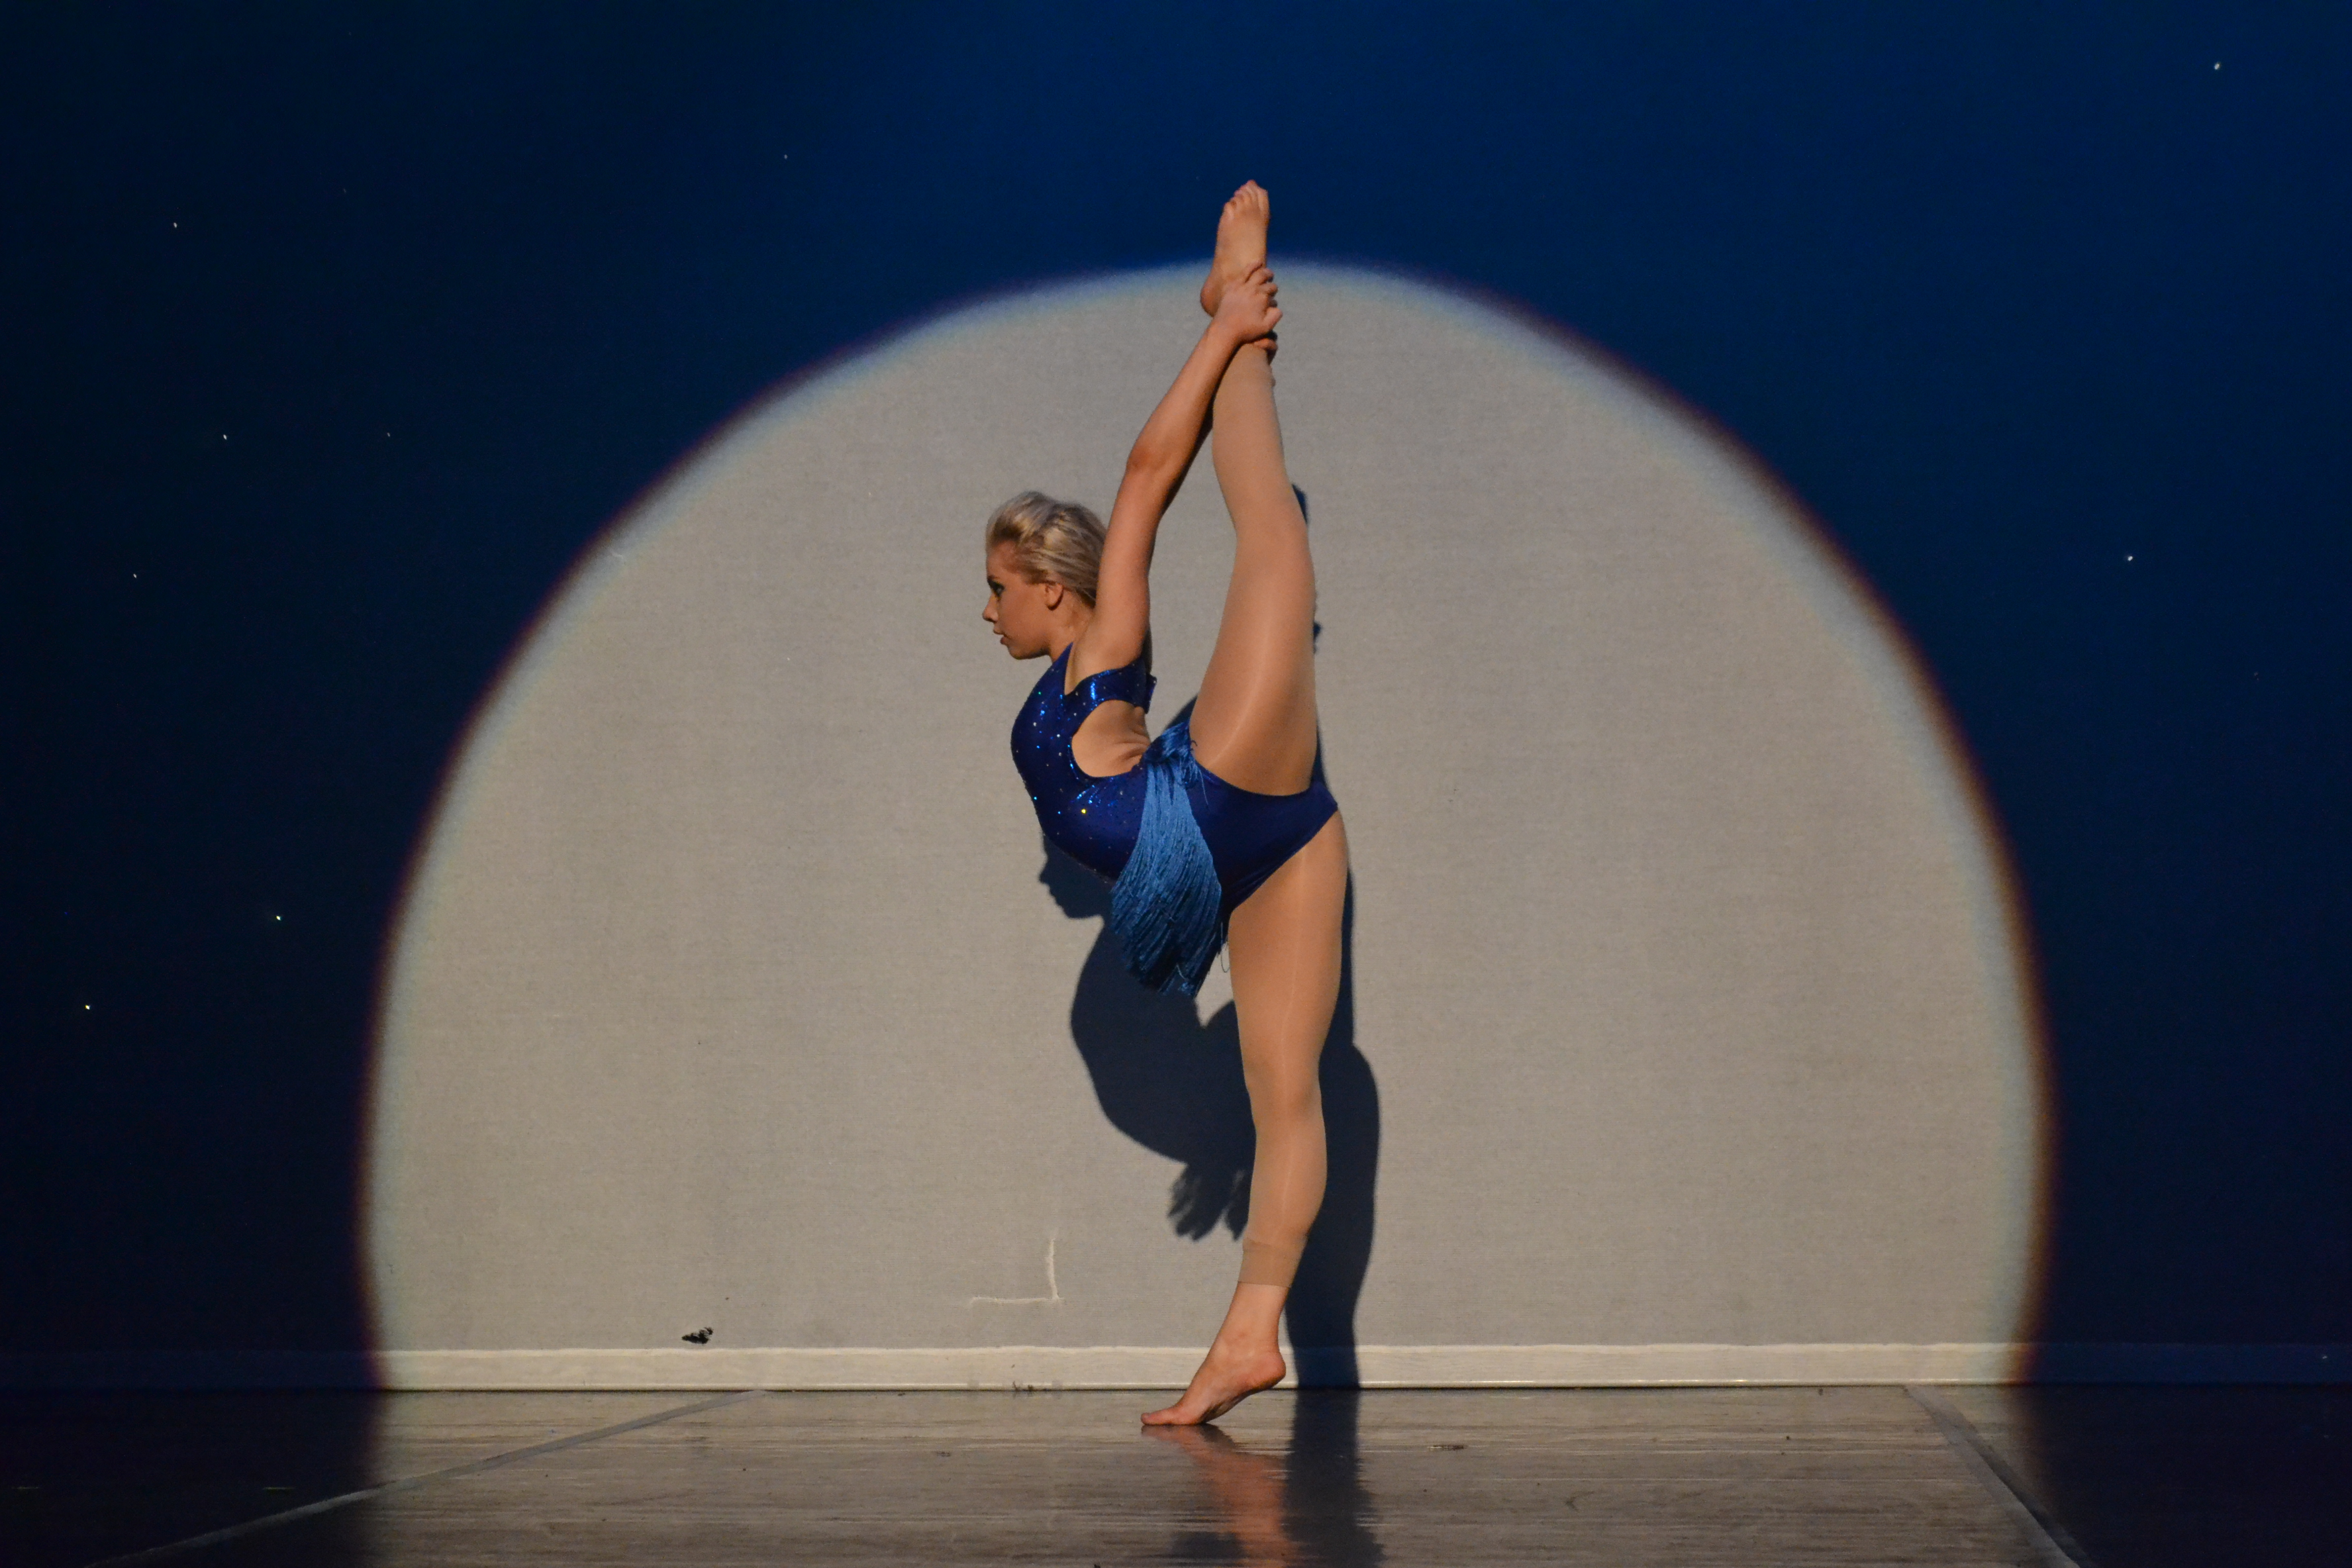 miss dancing all the way to blackpool u2013 berry academy of dance